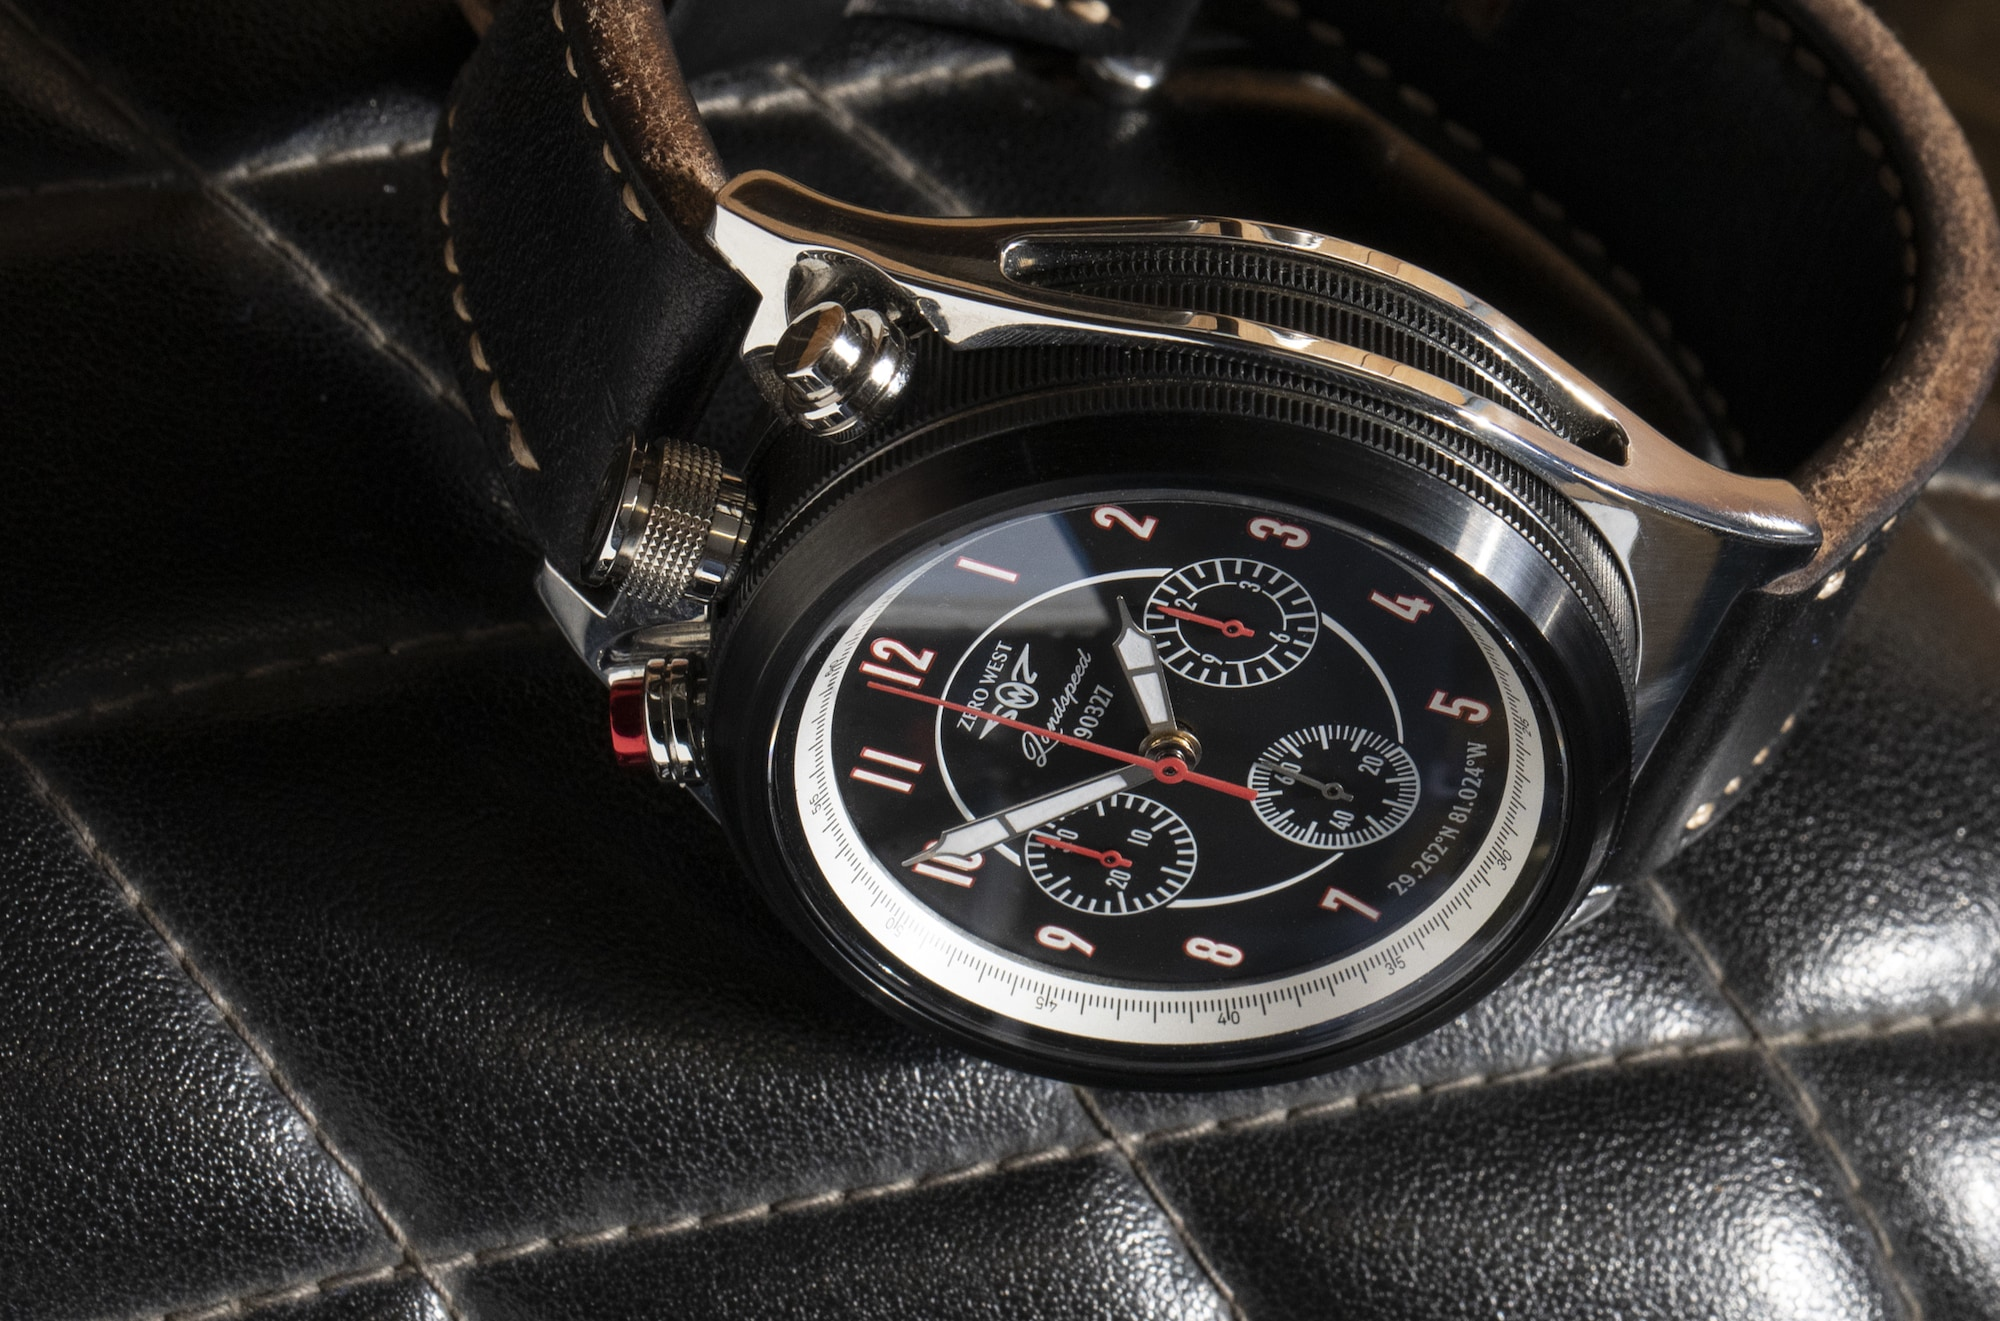 LS-1 Land speed Chronograph from Zero West on leather seat